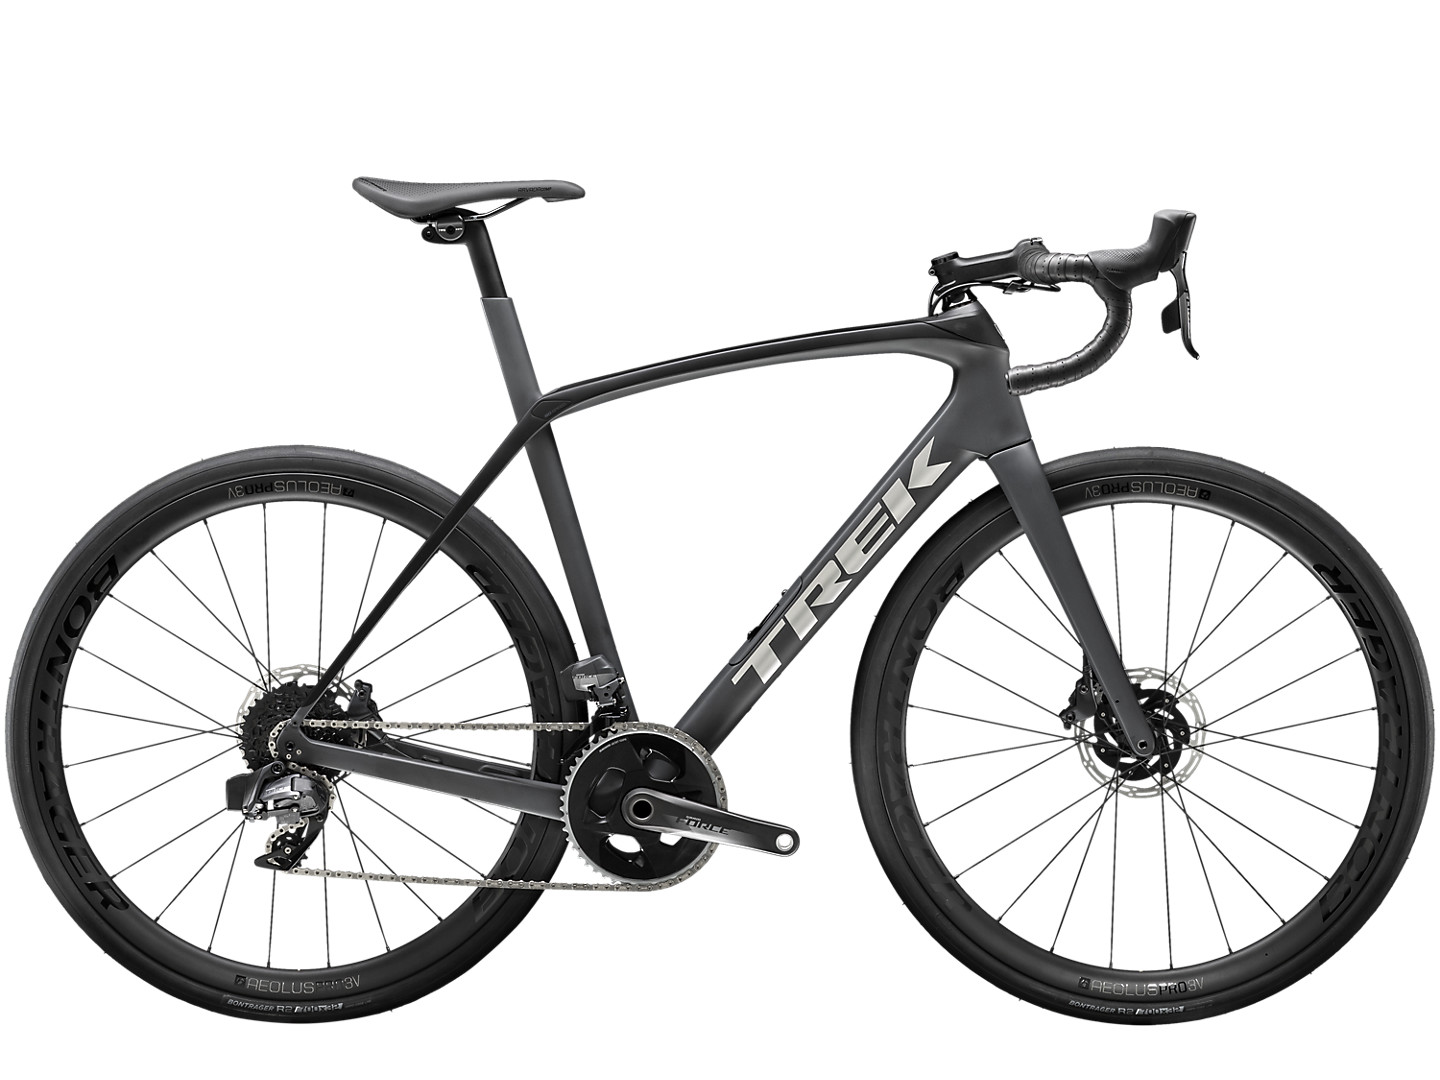 DEMO Trek Domane SL 7 ETAP 52cm in Charcoal-Black